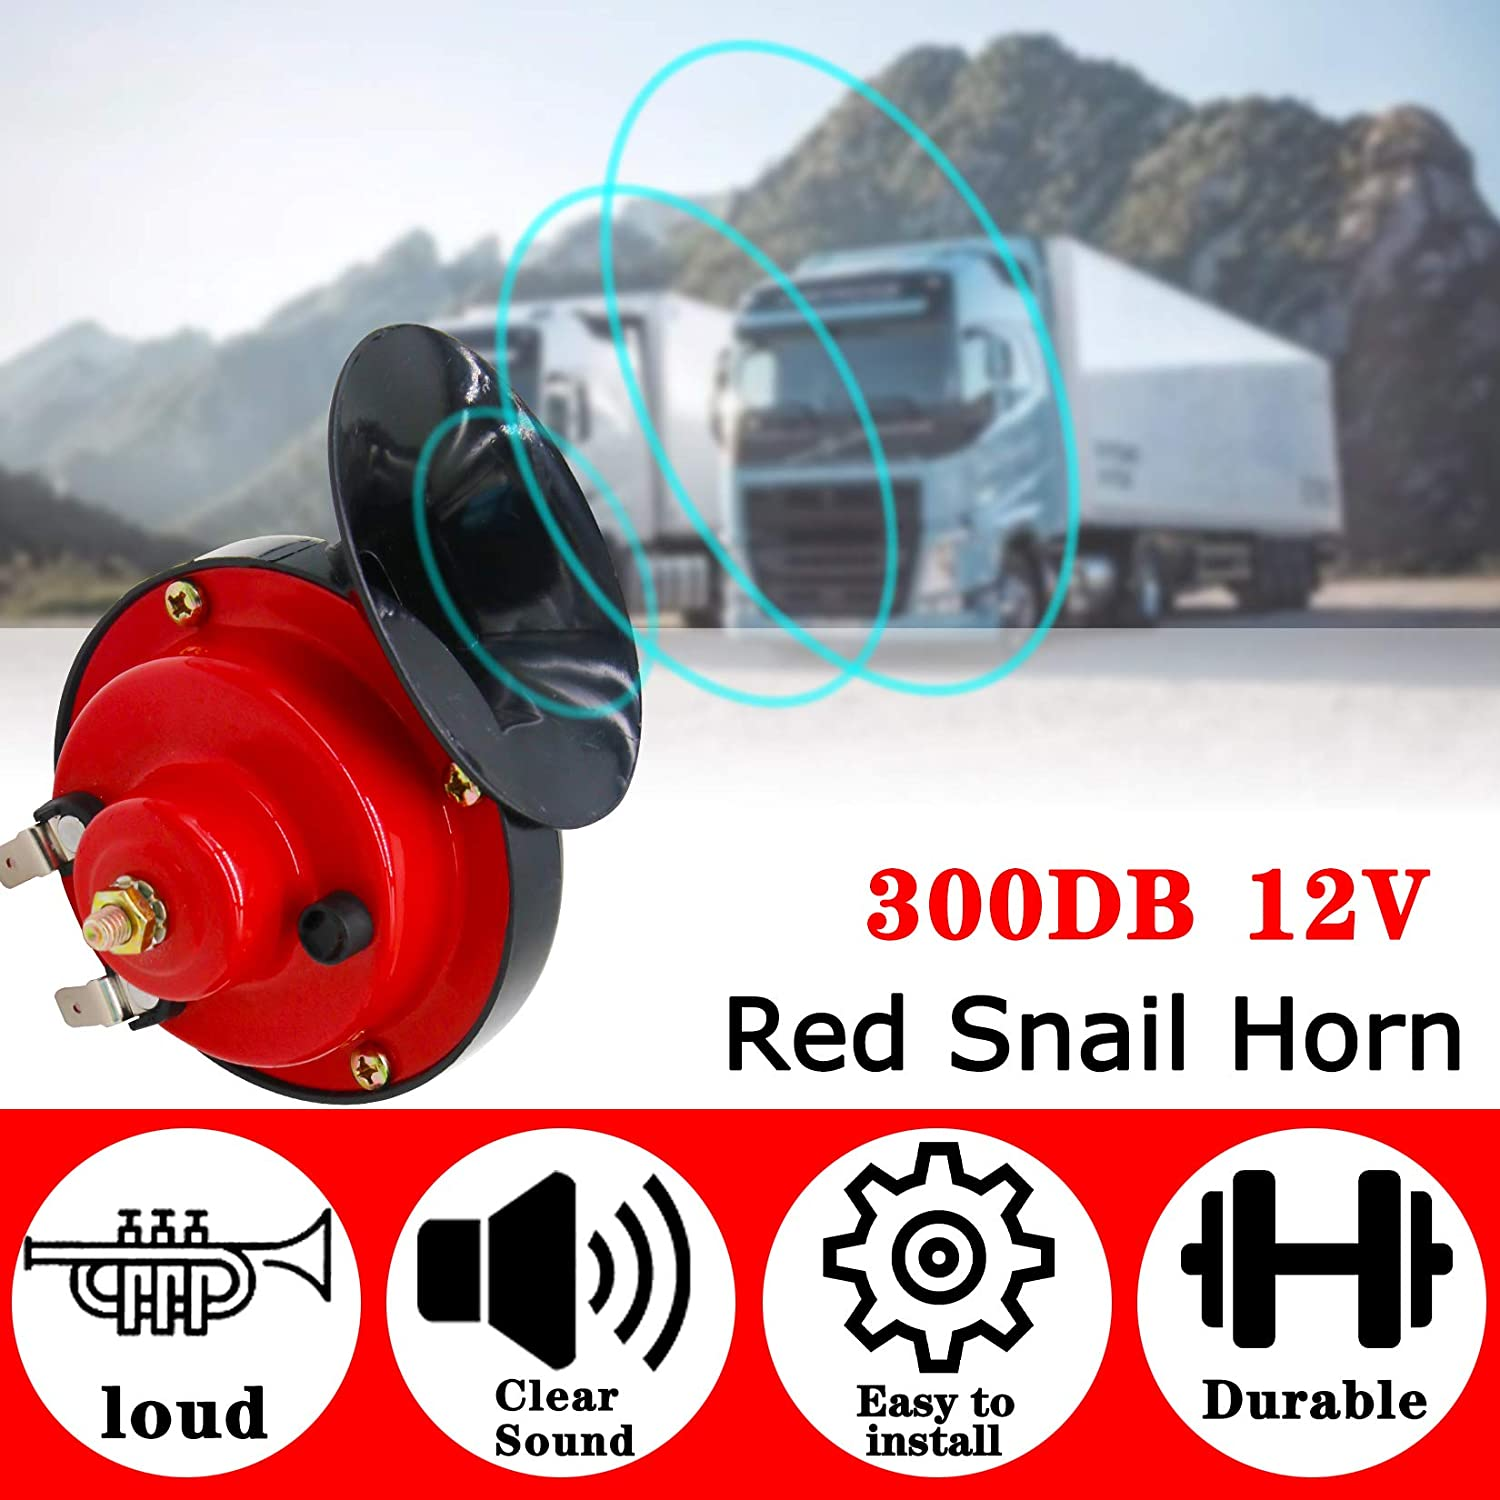 HXXF Train Horns for Trucks 300DB Super Loud Electric Snail Single Horn 12V Waterproof Train Horns Kit for Truck Train Boat Car Motorcycle Truck Boat,Gloves Included 2 Pack